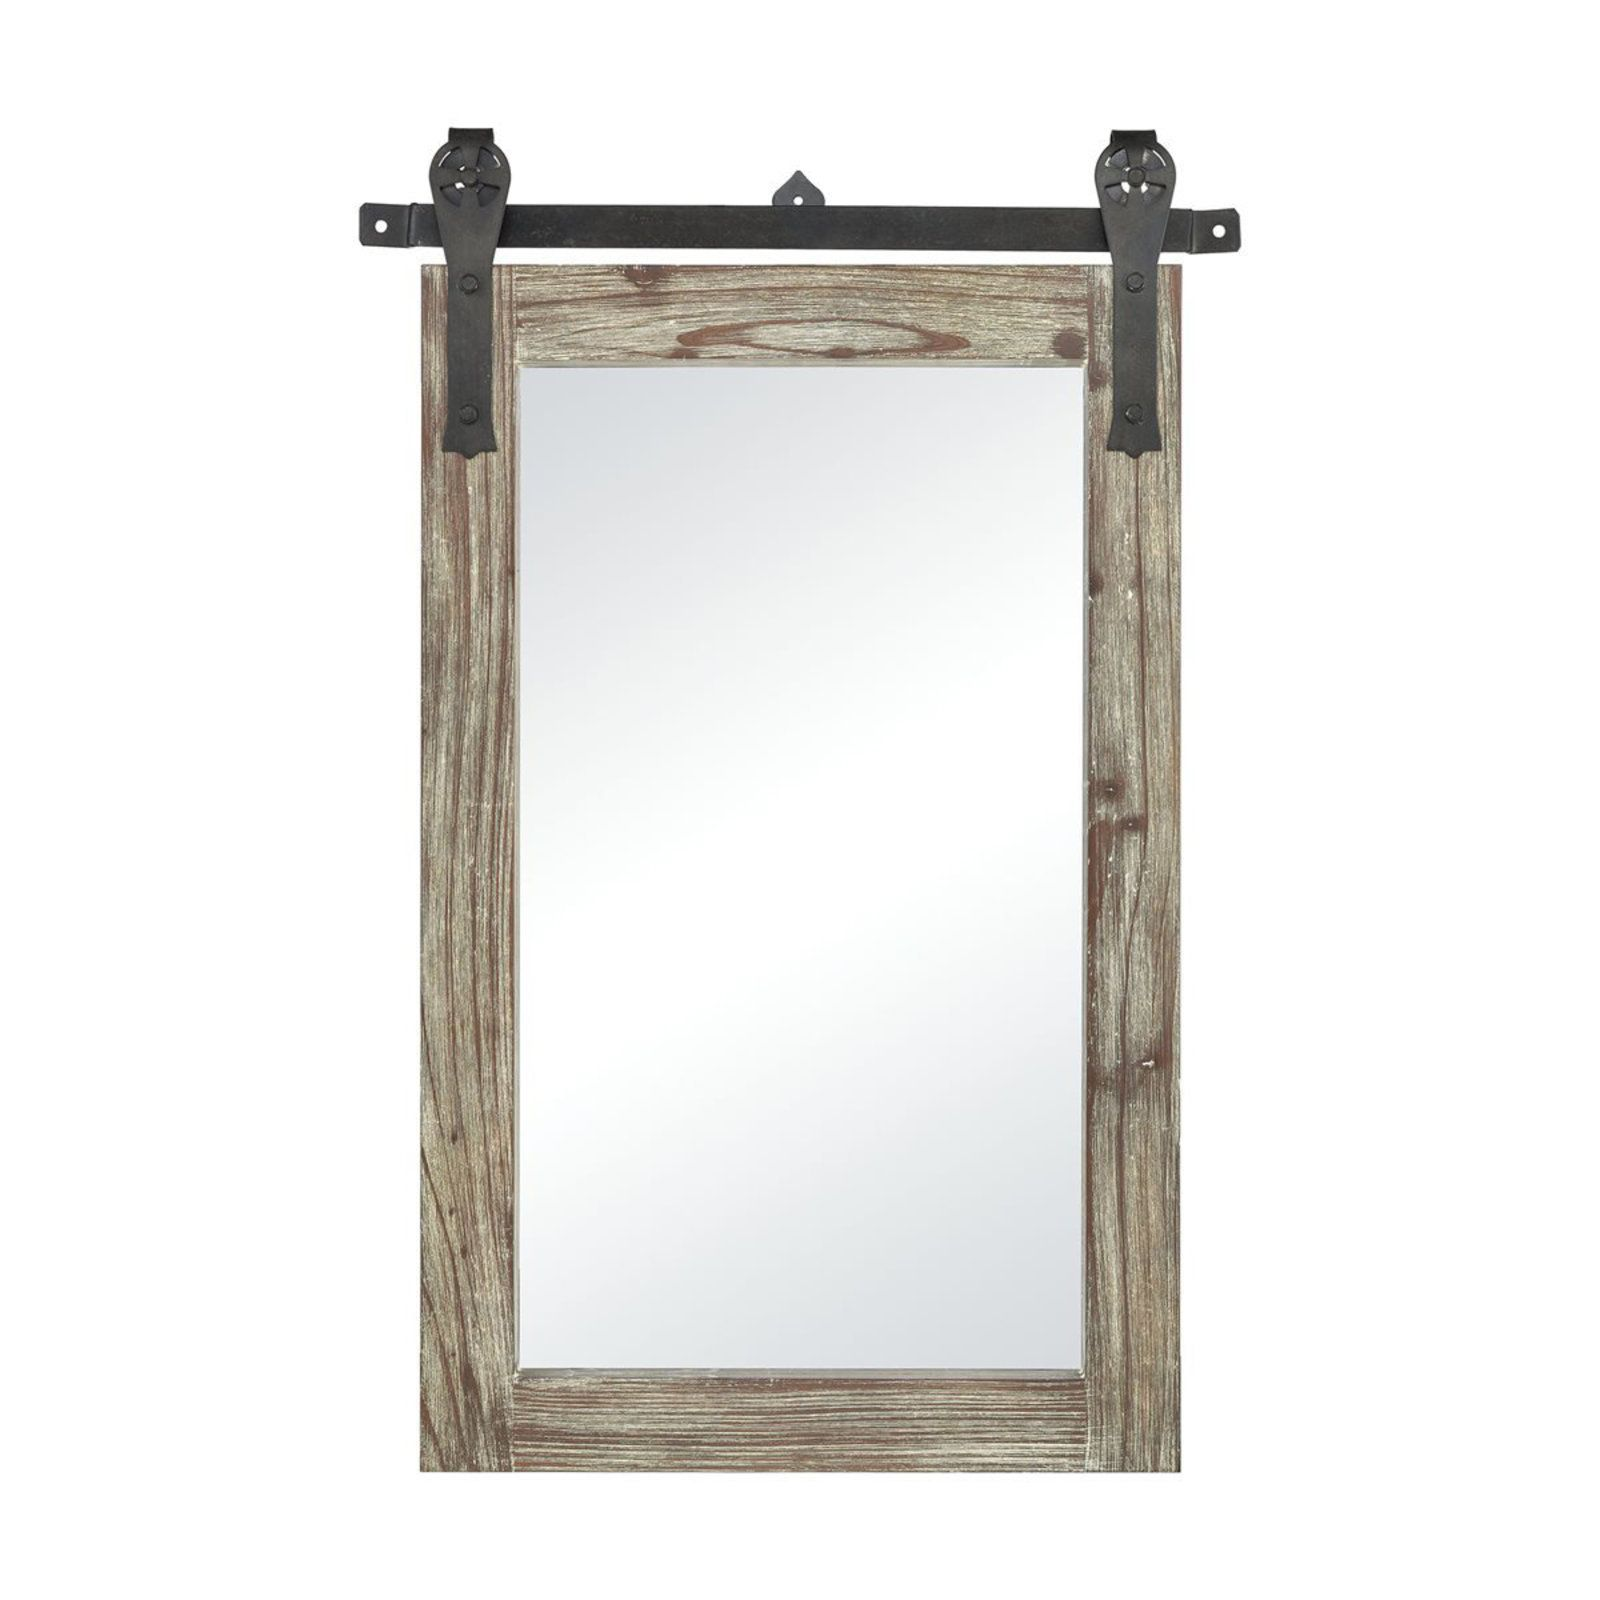 Barn Door Framed Mirror Mirror Barn Door Interior Barn Doors Door Frame